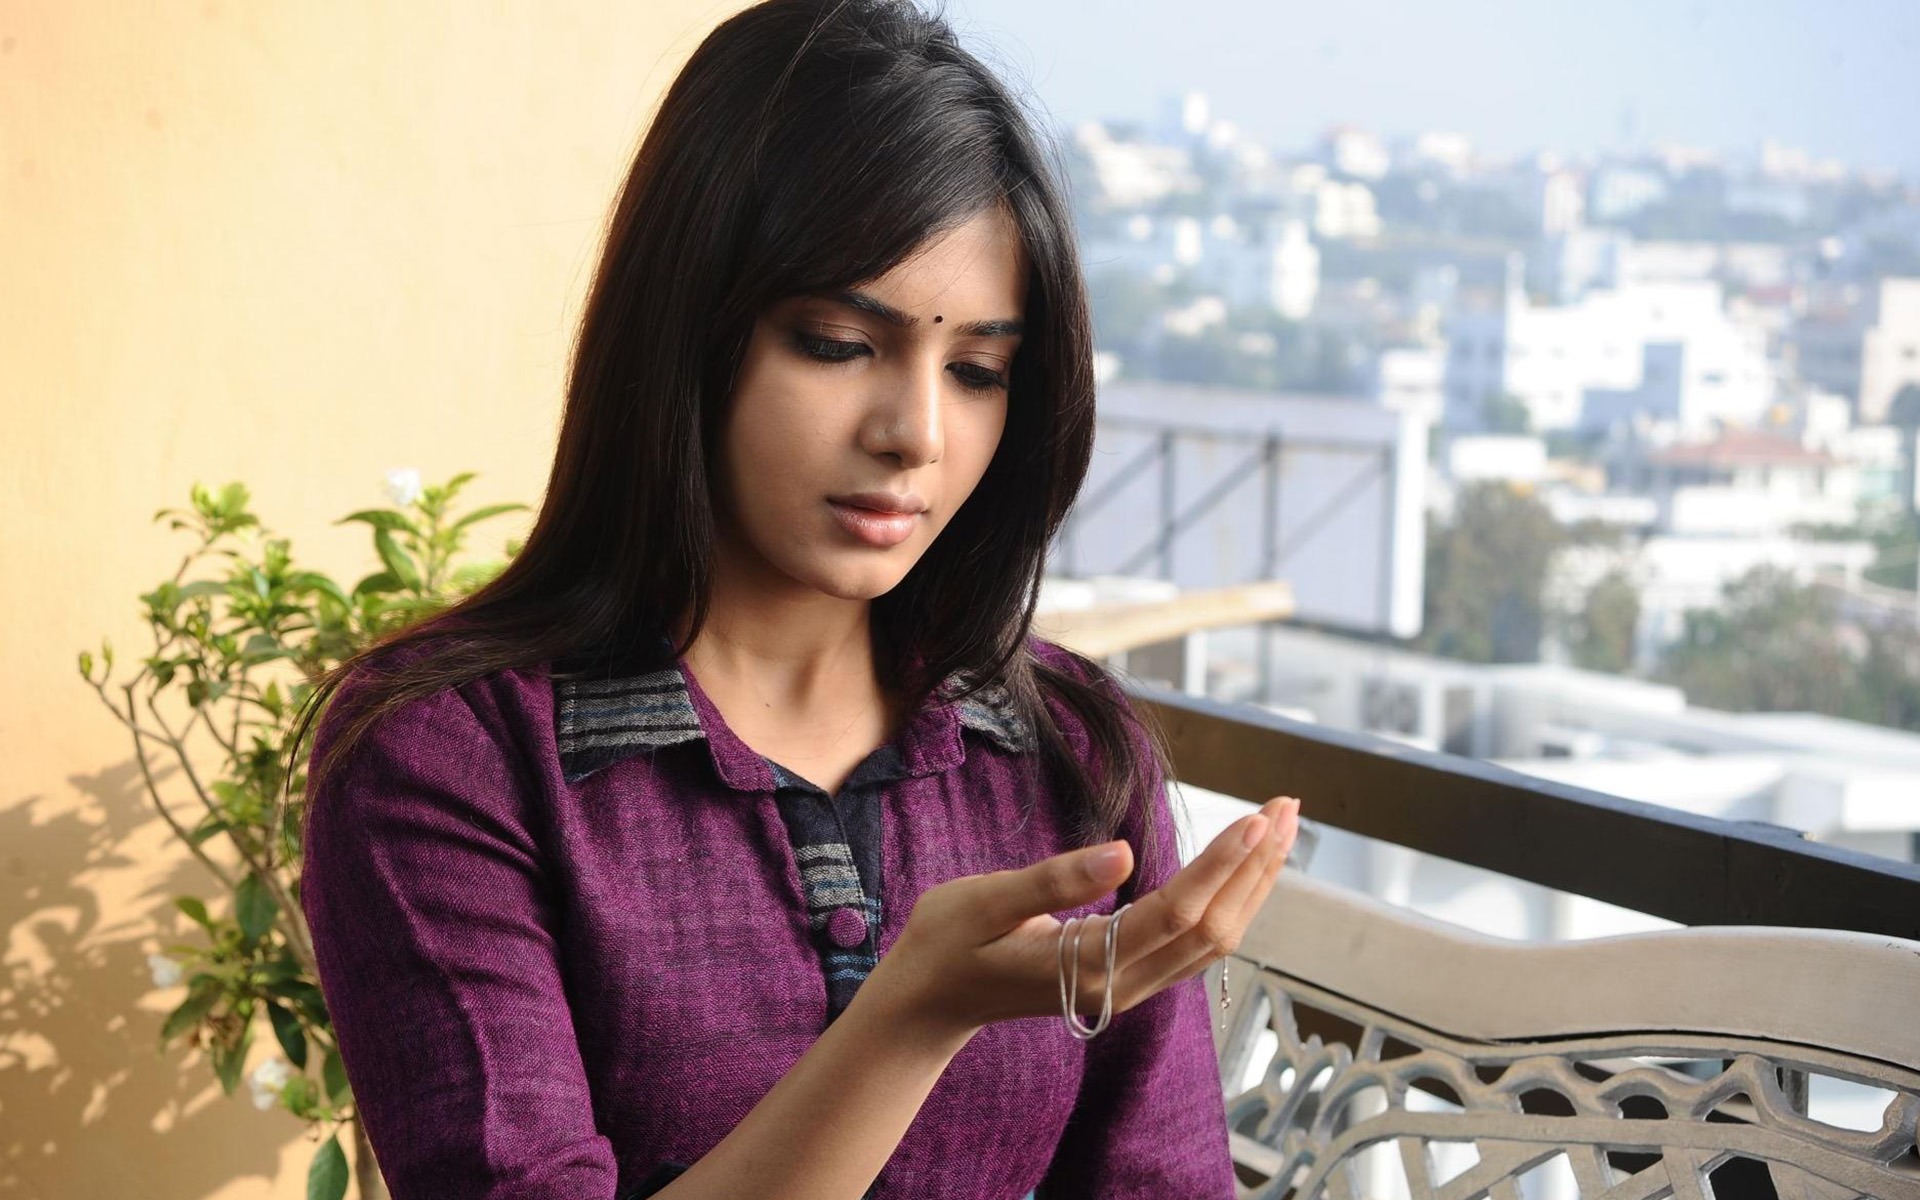 samantha-ruth-prabhu-desktop-wallpaper-hd-wallpapers-pic-mch0100116